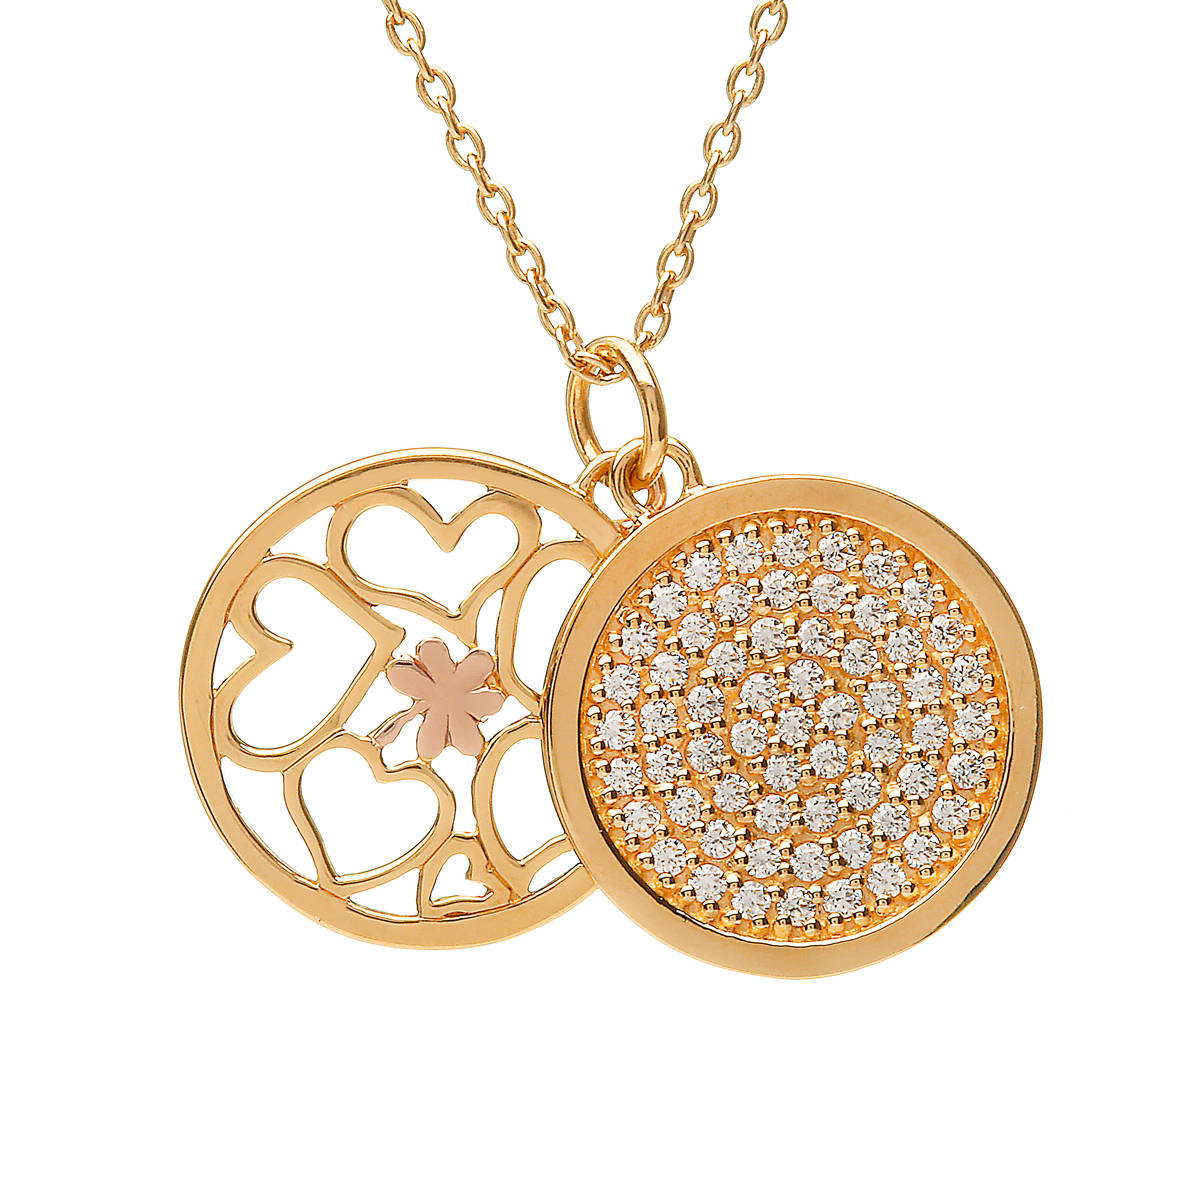 House of Lor silver GP double round cz pendant with rose gold Shamrock made from rare Irish goldaick/dipck